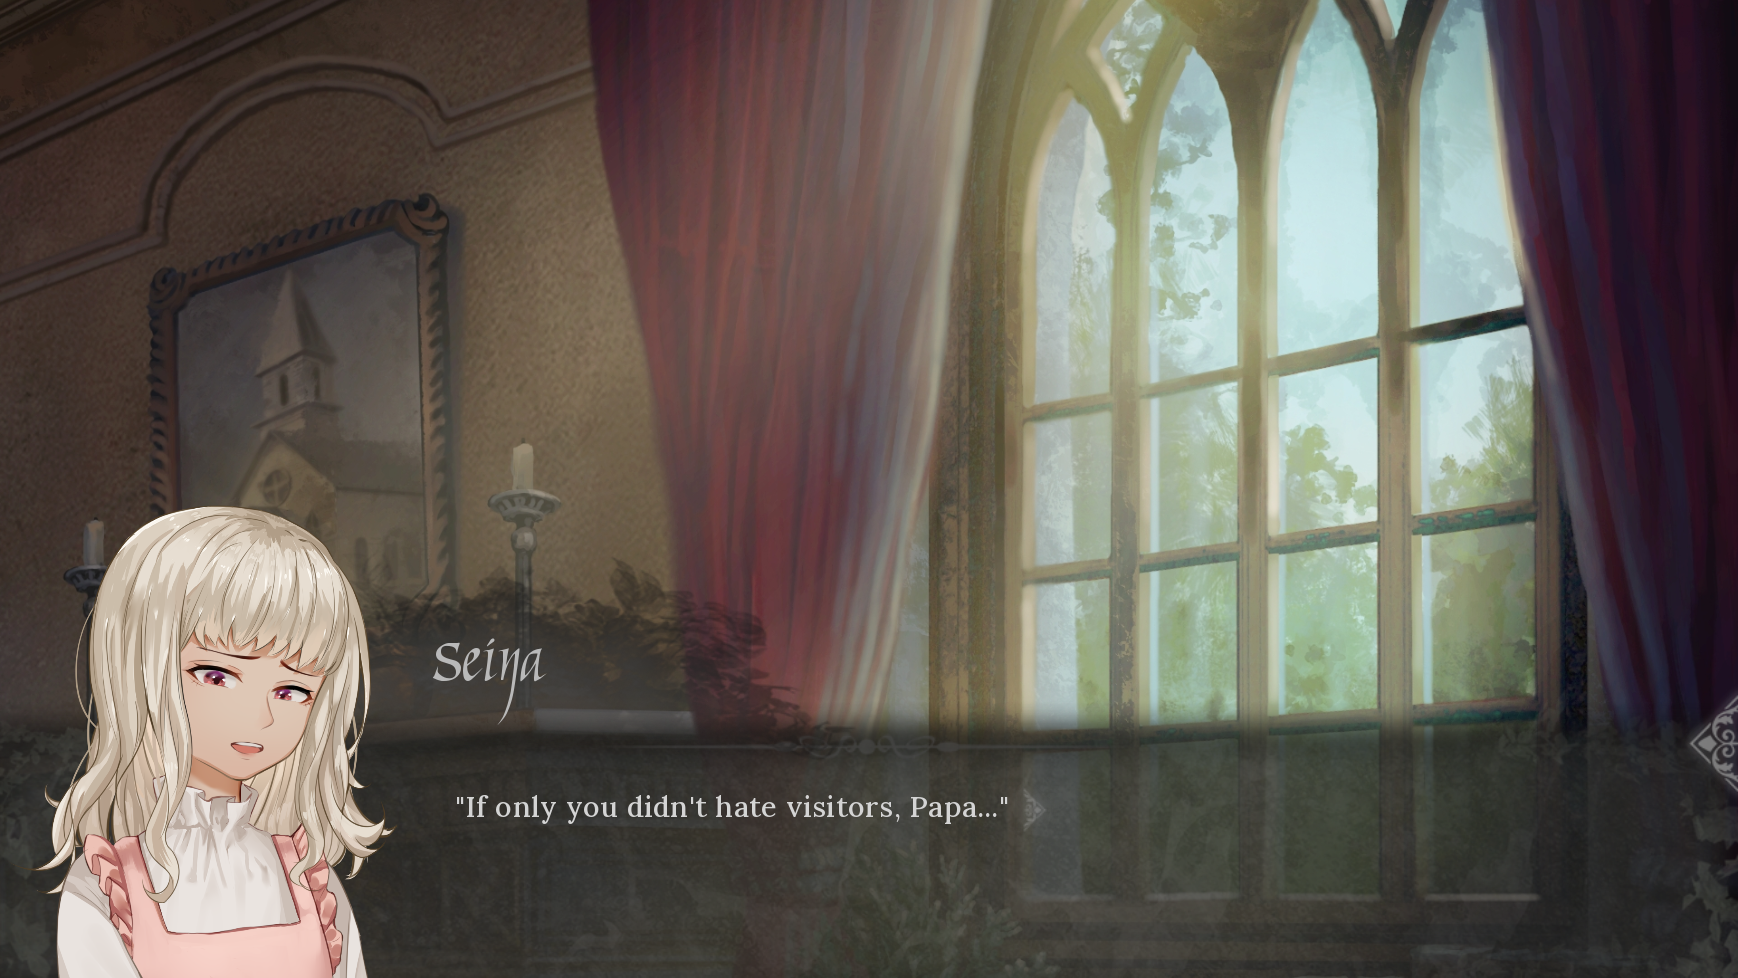 screenshot of daytime window, text spoken by Seina: 'If only you didn't hate visitors, Papa...'